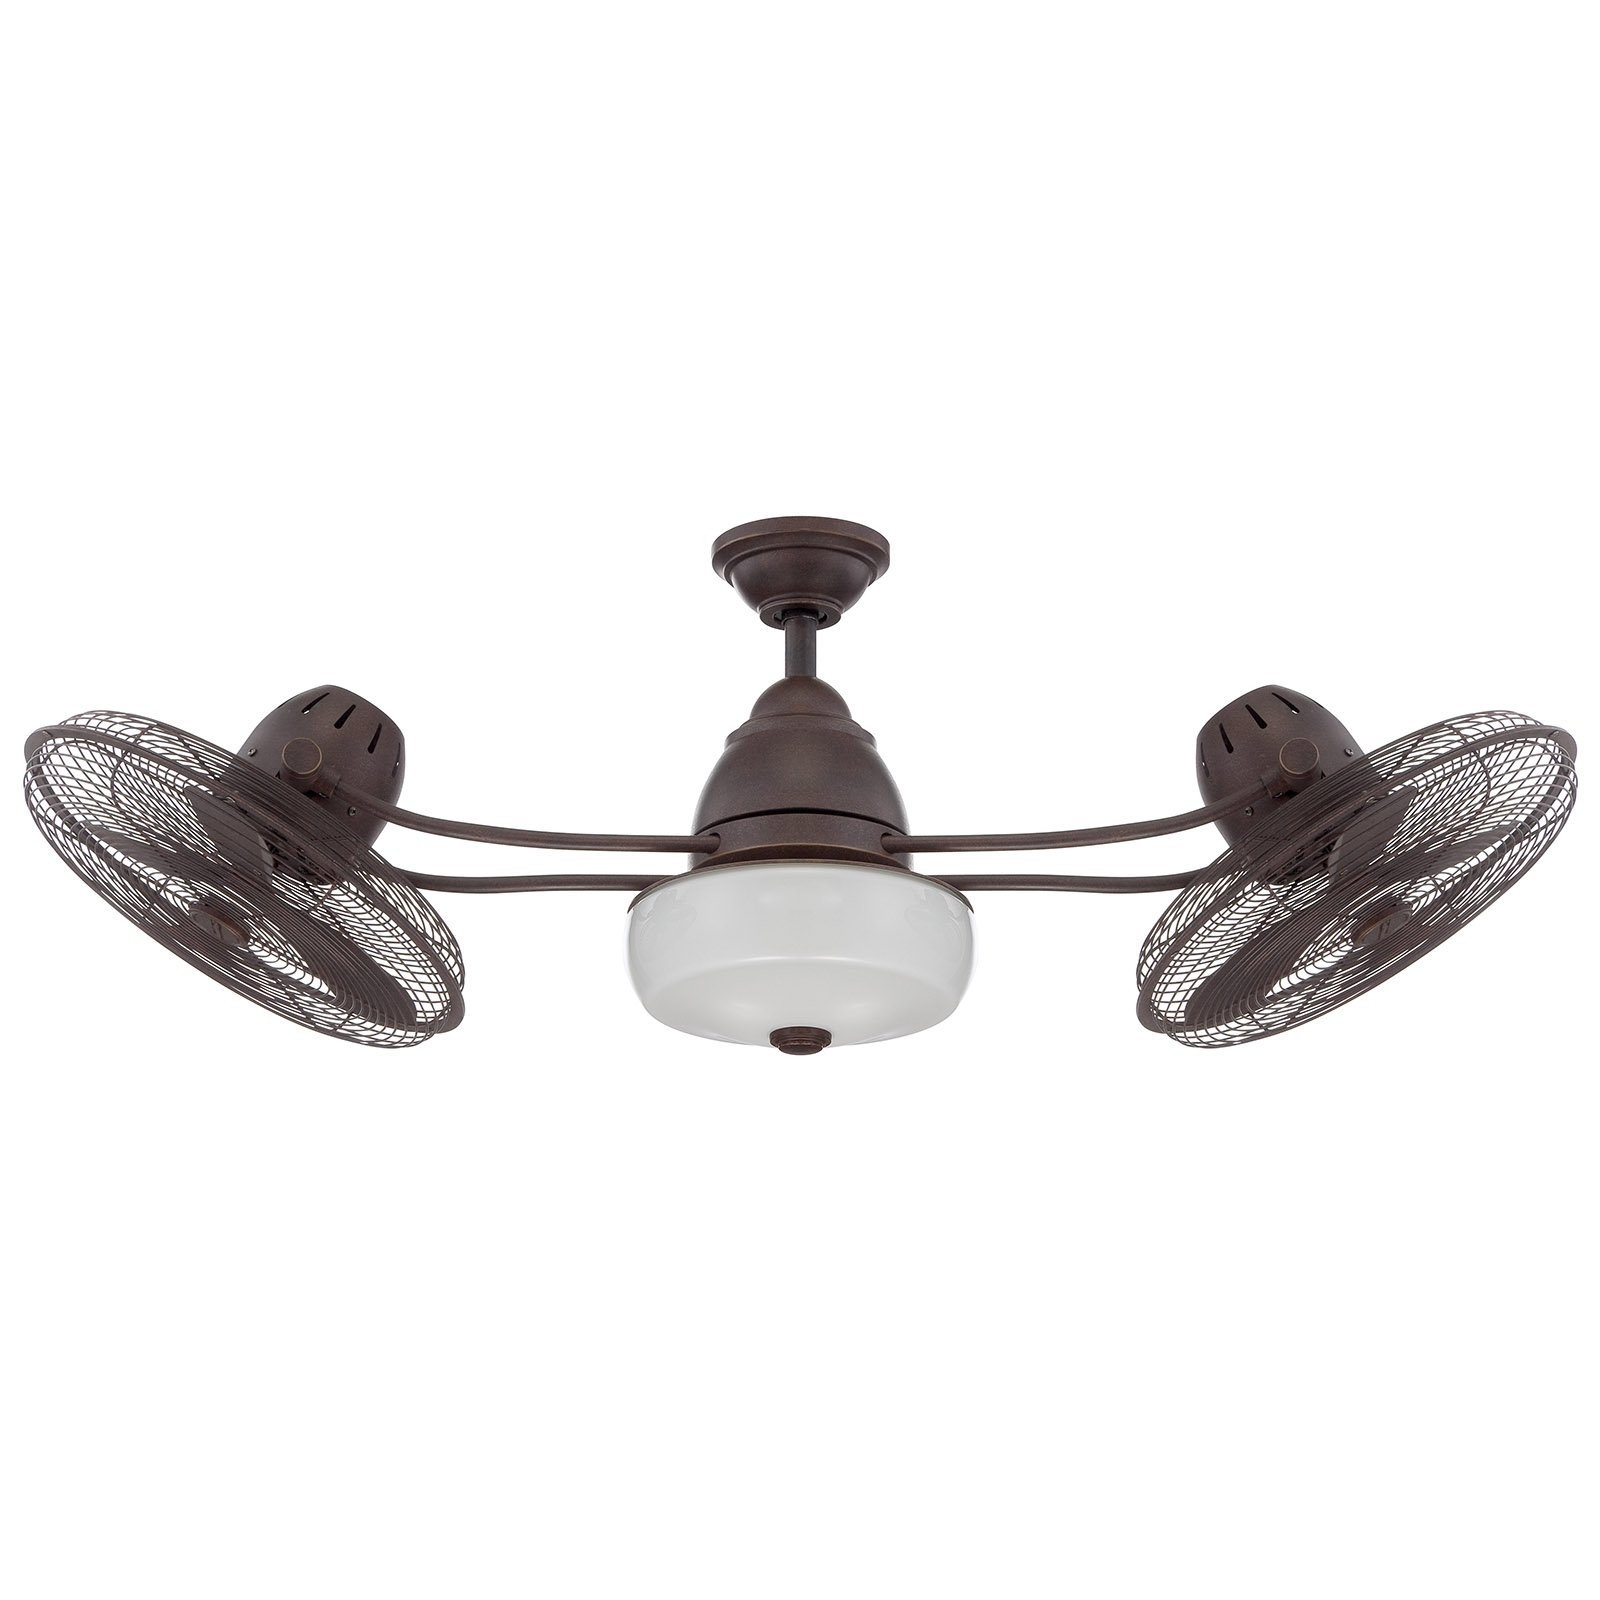 48 Inch Outdoor Ceiling Fans With Light Throughout Well Liked Craftmade Bellows Ii Bw248Ag6 48 In (View 6 of 20)